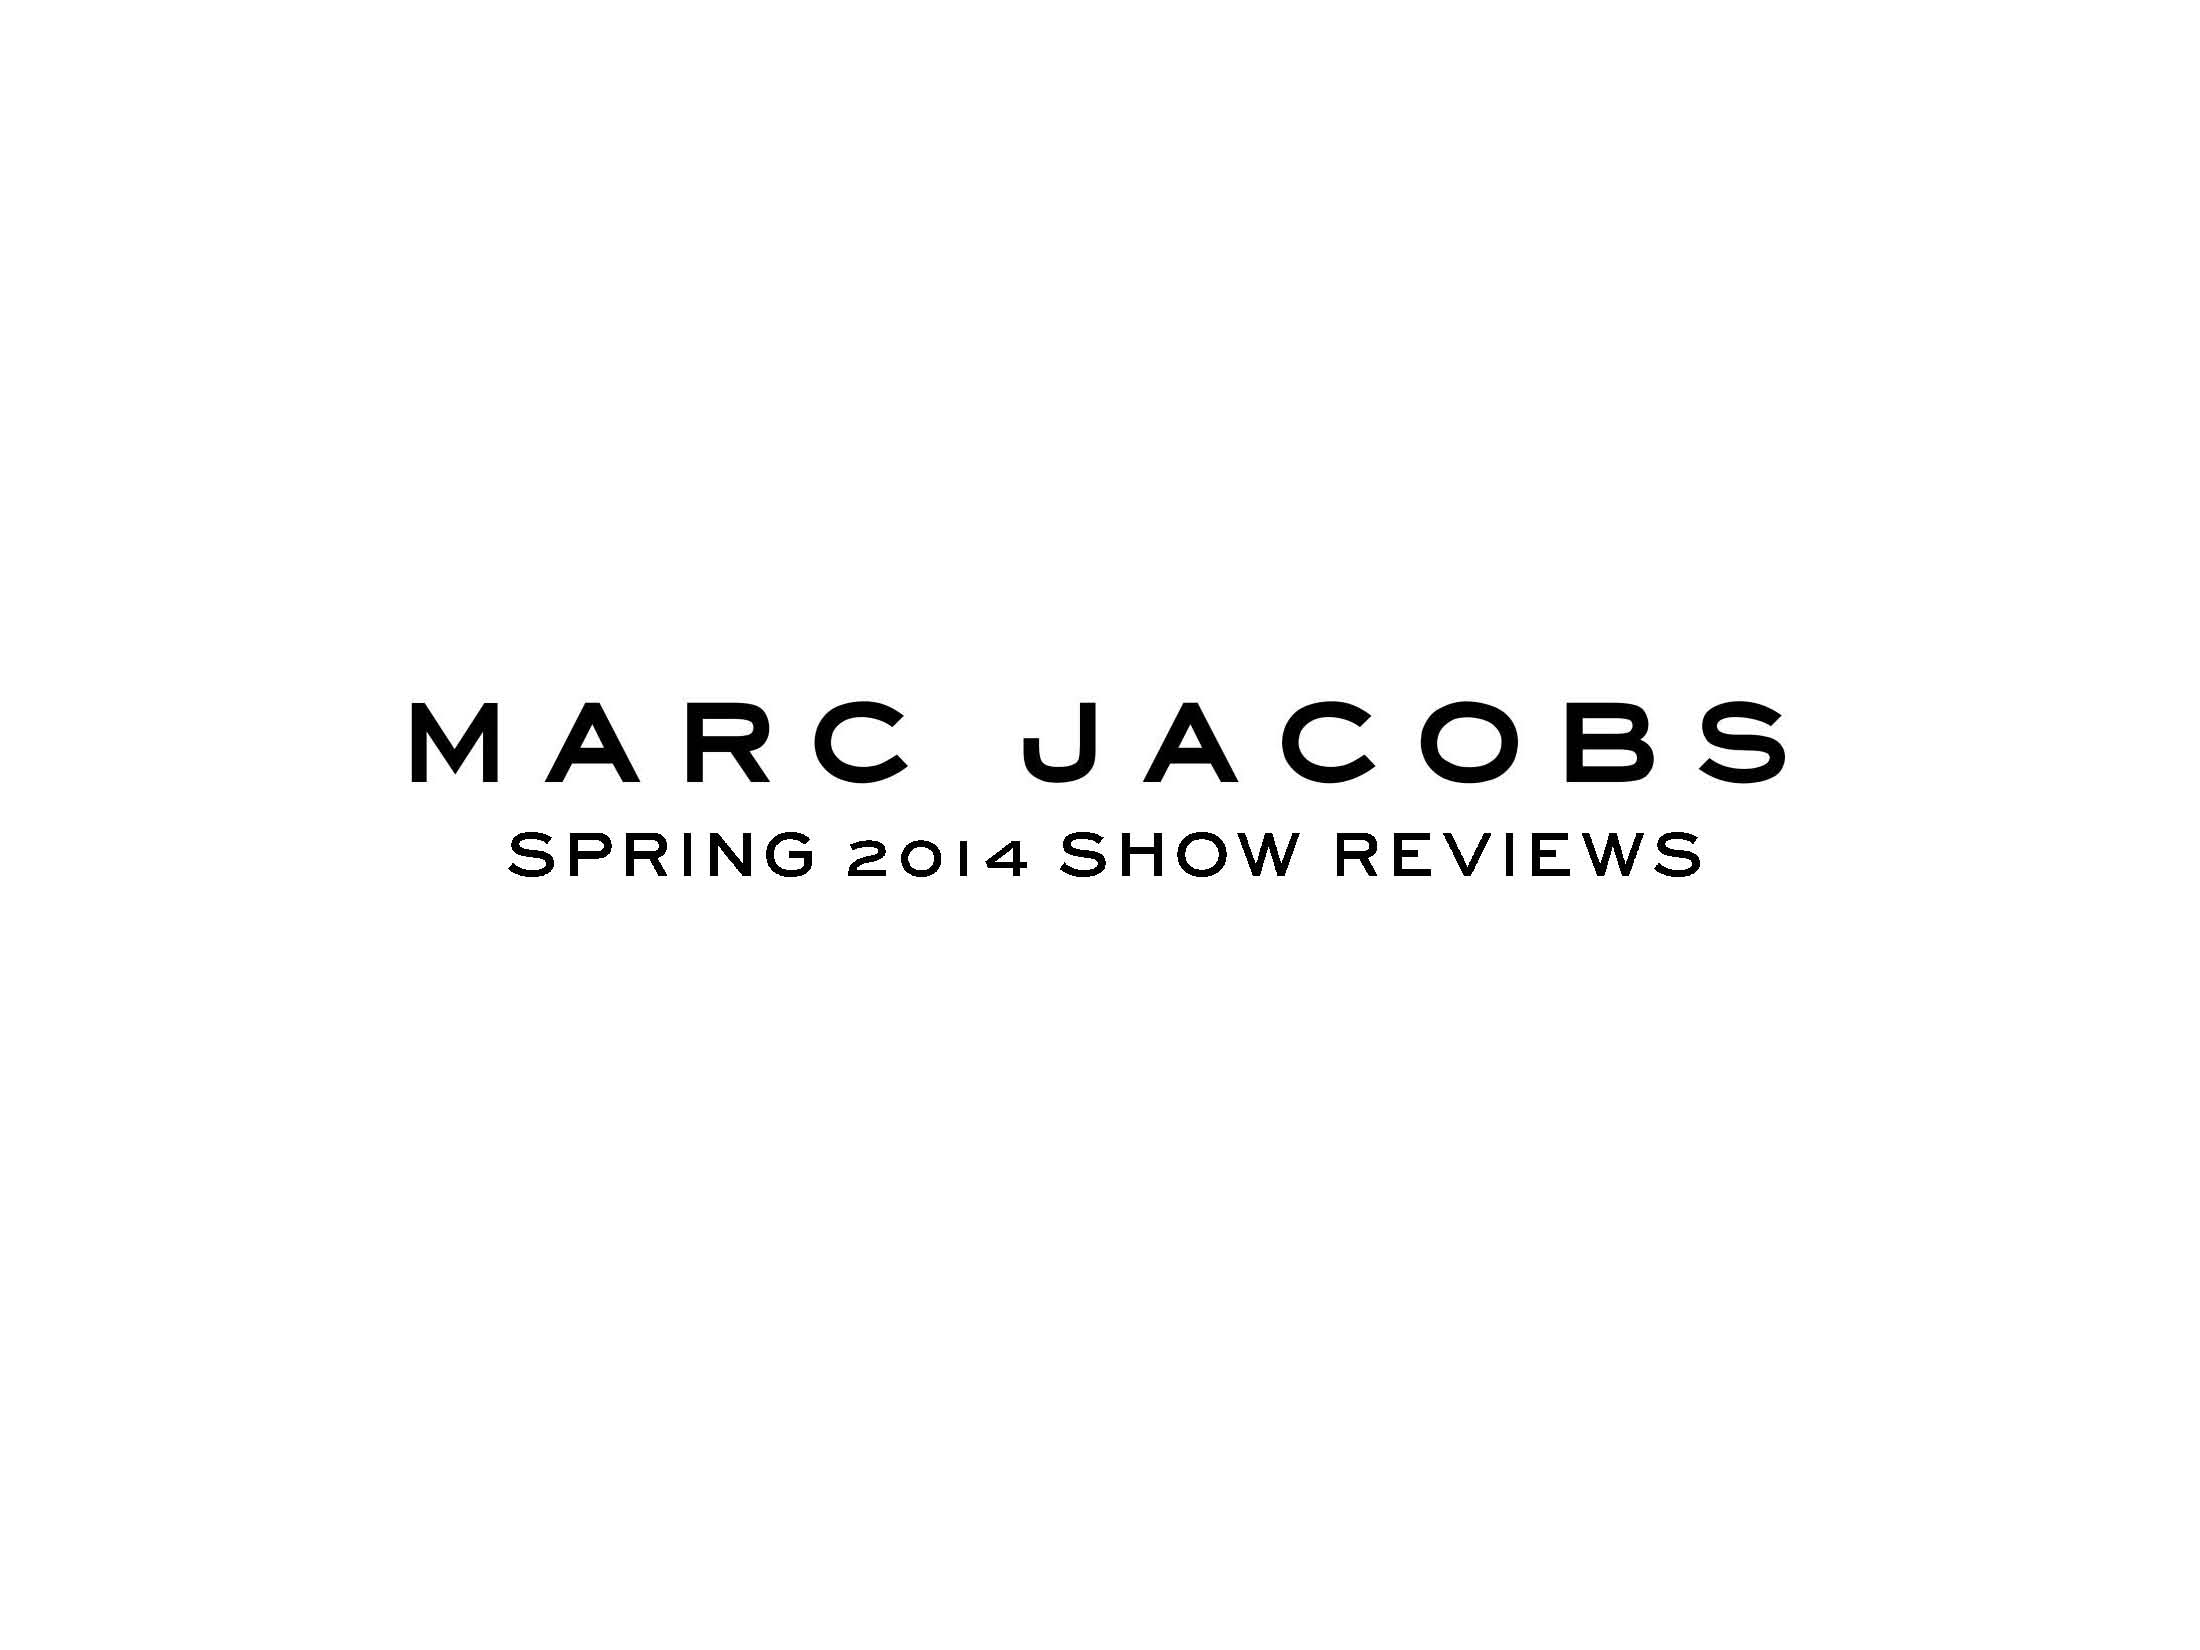 Spring 2014 Show Reviews_Page_01.jpg